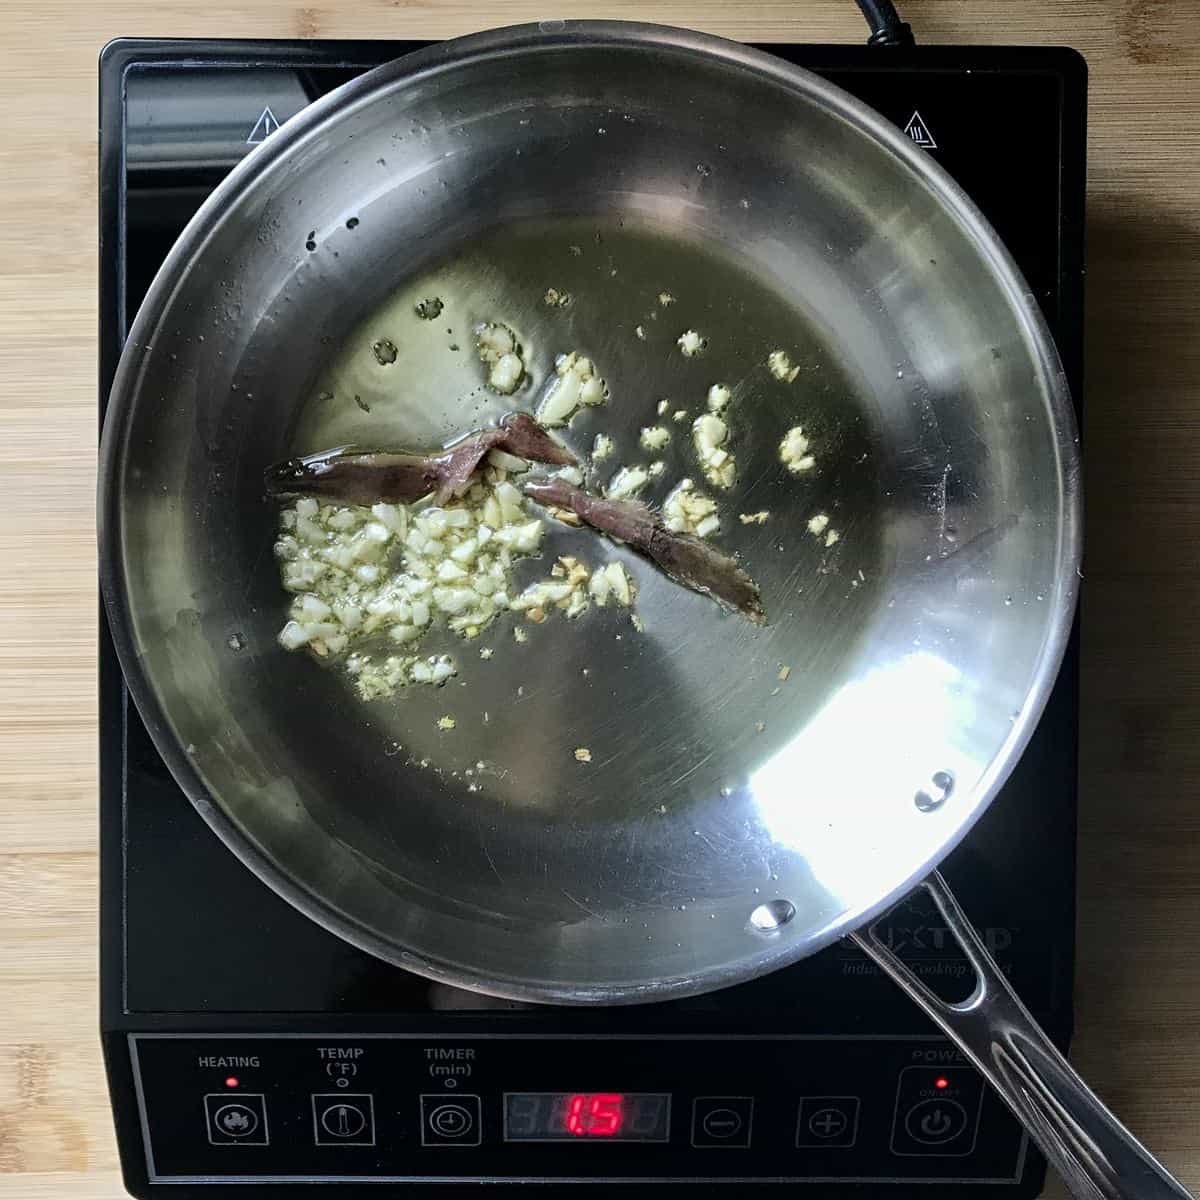 Chopped garlic and anchovies being sauteed in a saucepan.